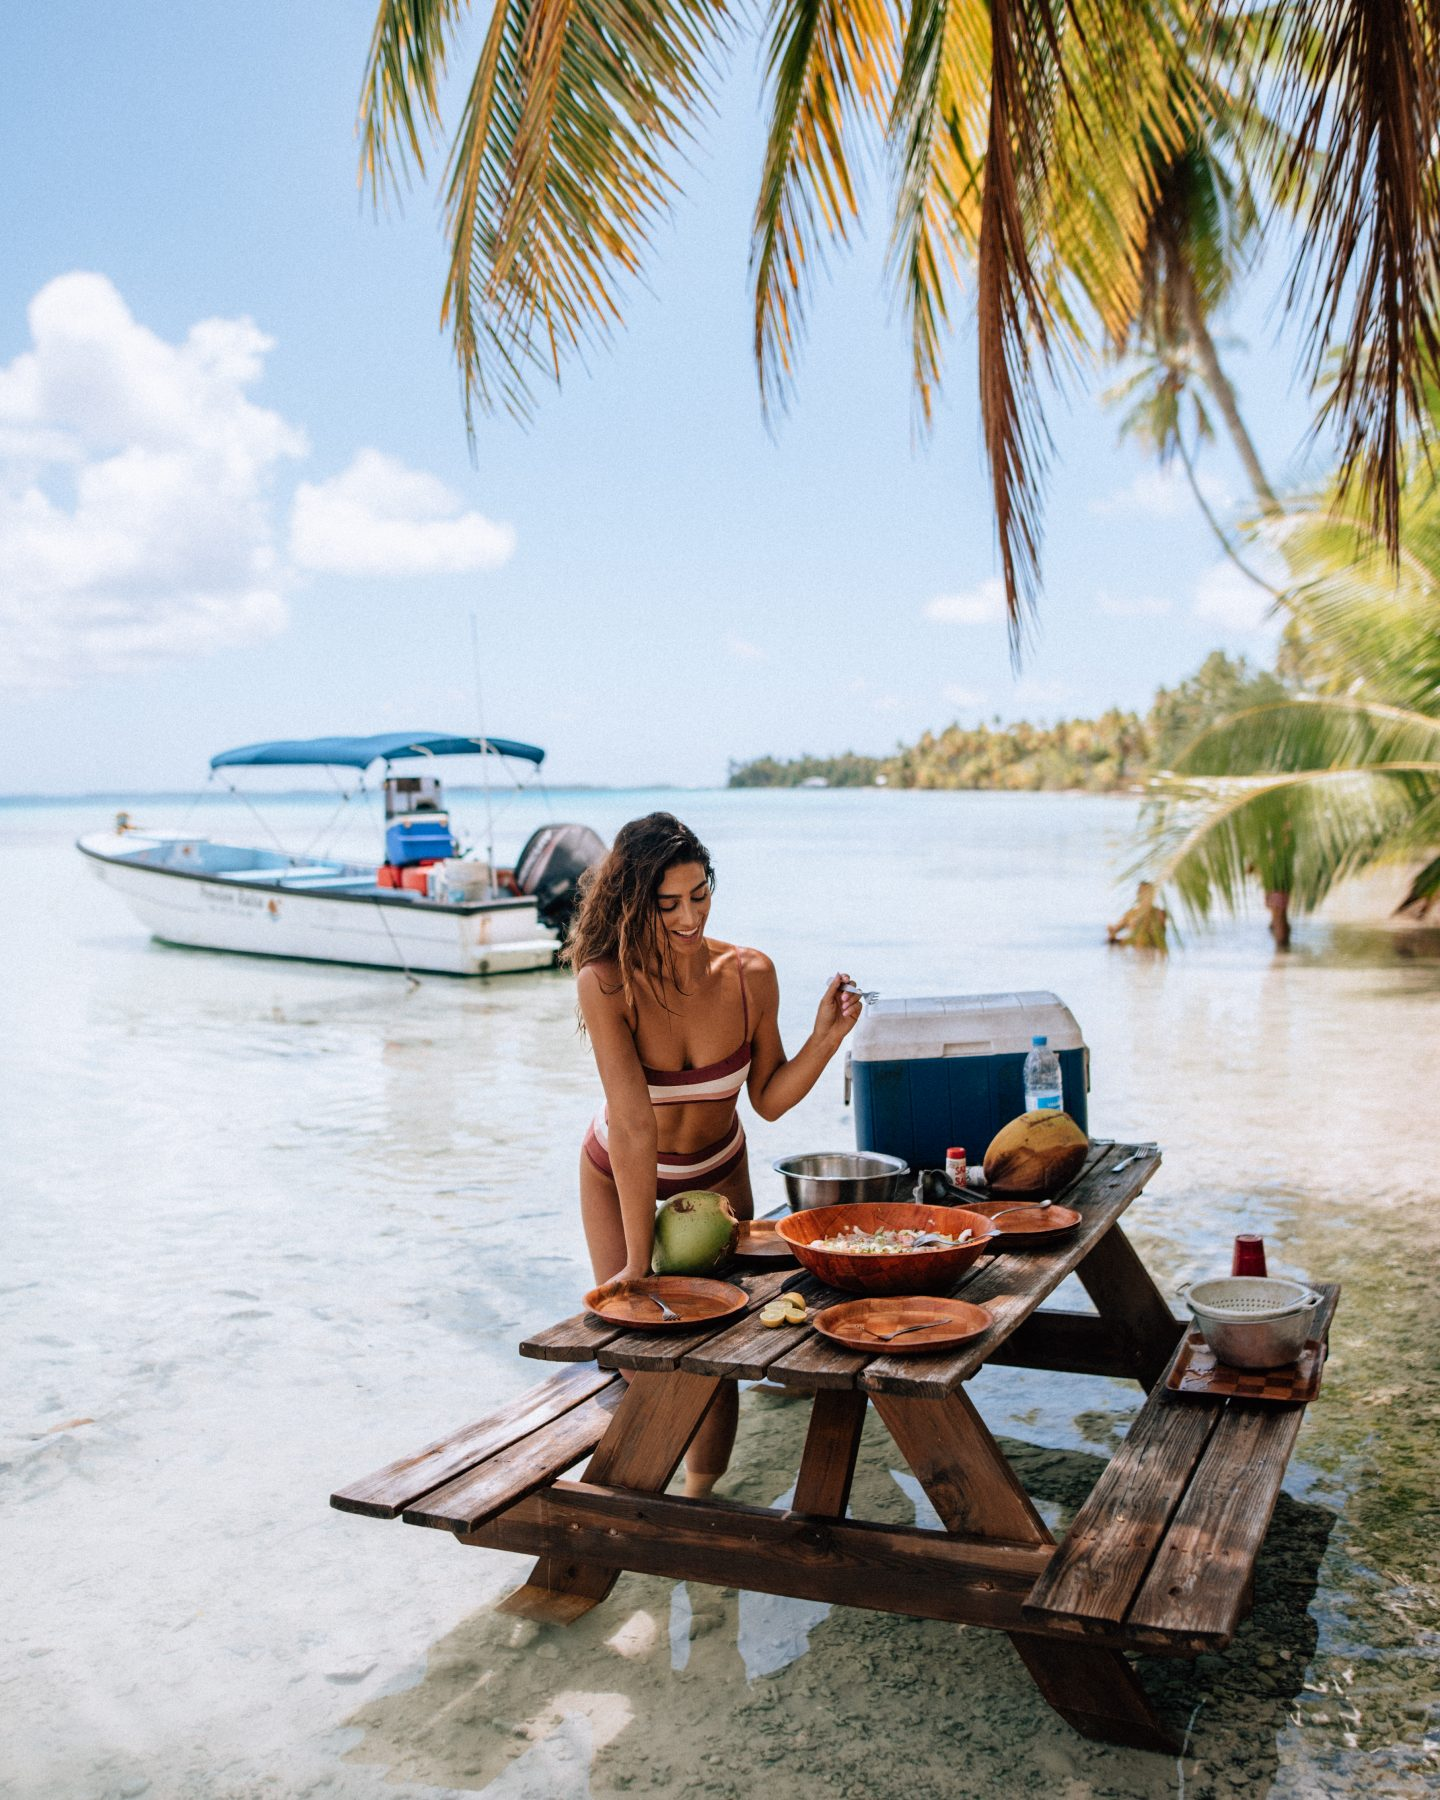 Lisa Homsy enjoying a picnic on an island in Tahiti